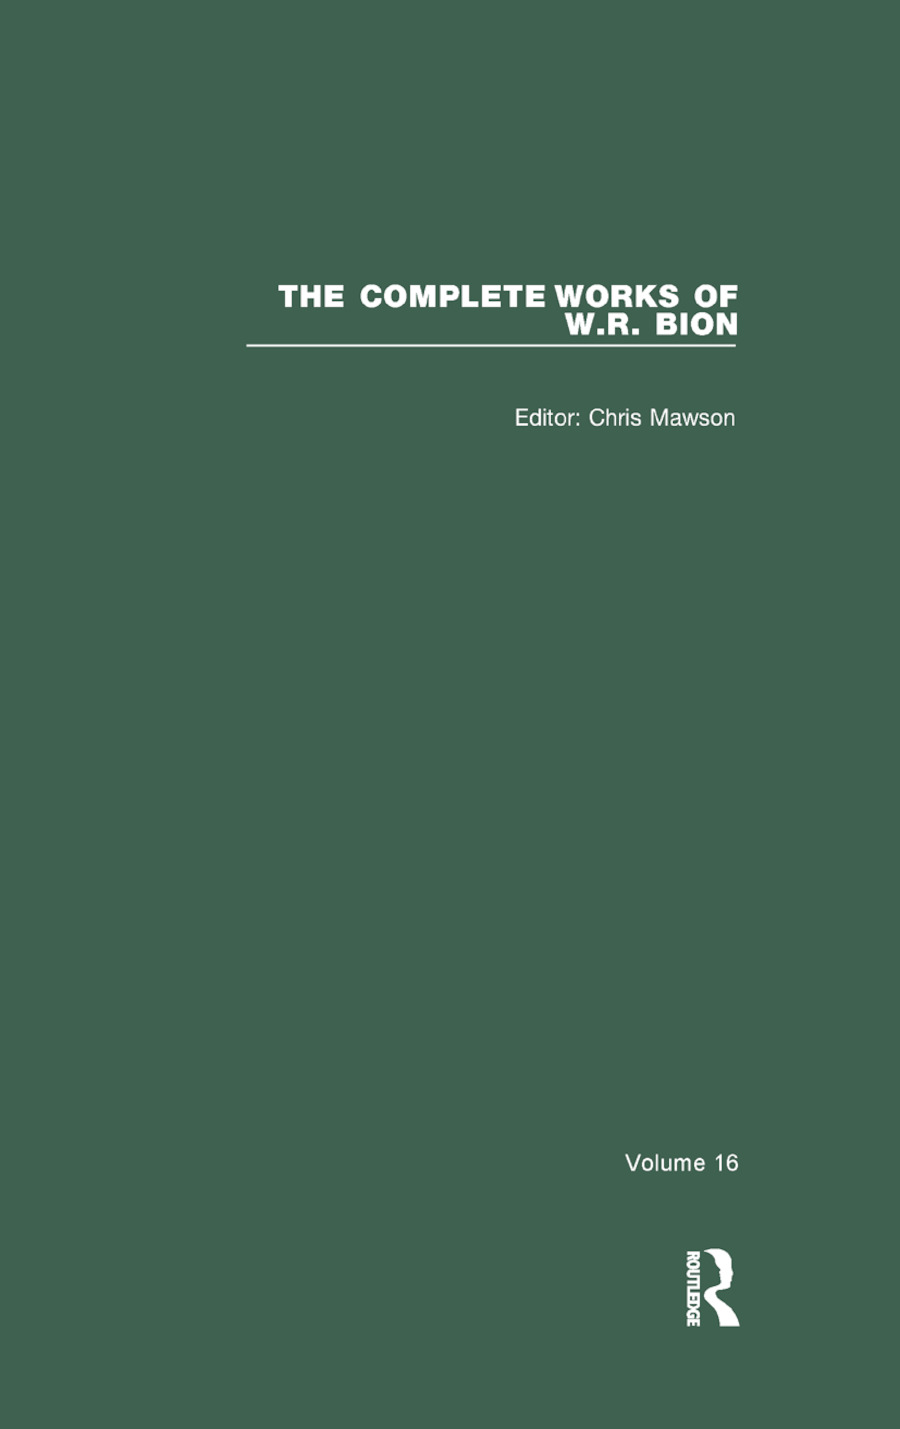 The Complete Works of W.R. Bion: Volume 16 book cover